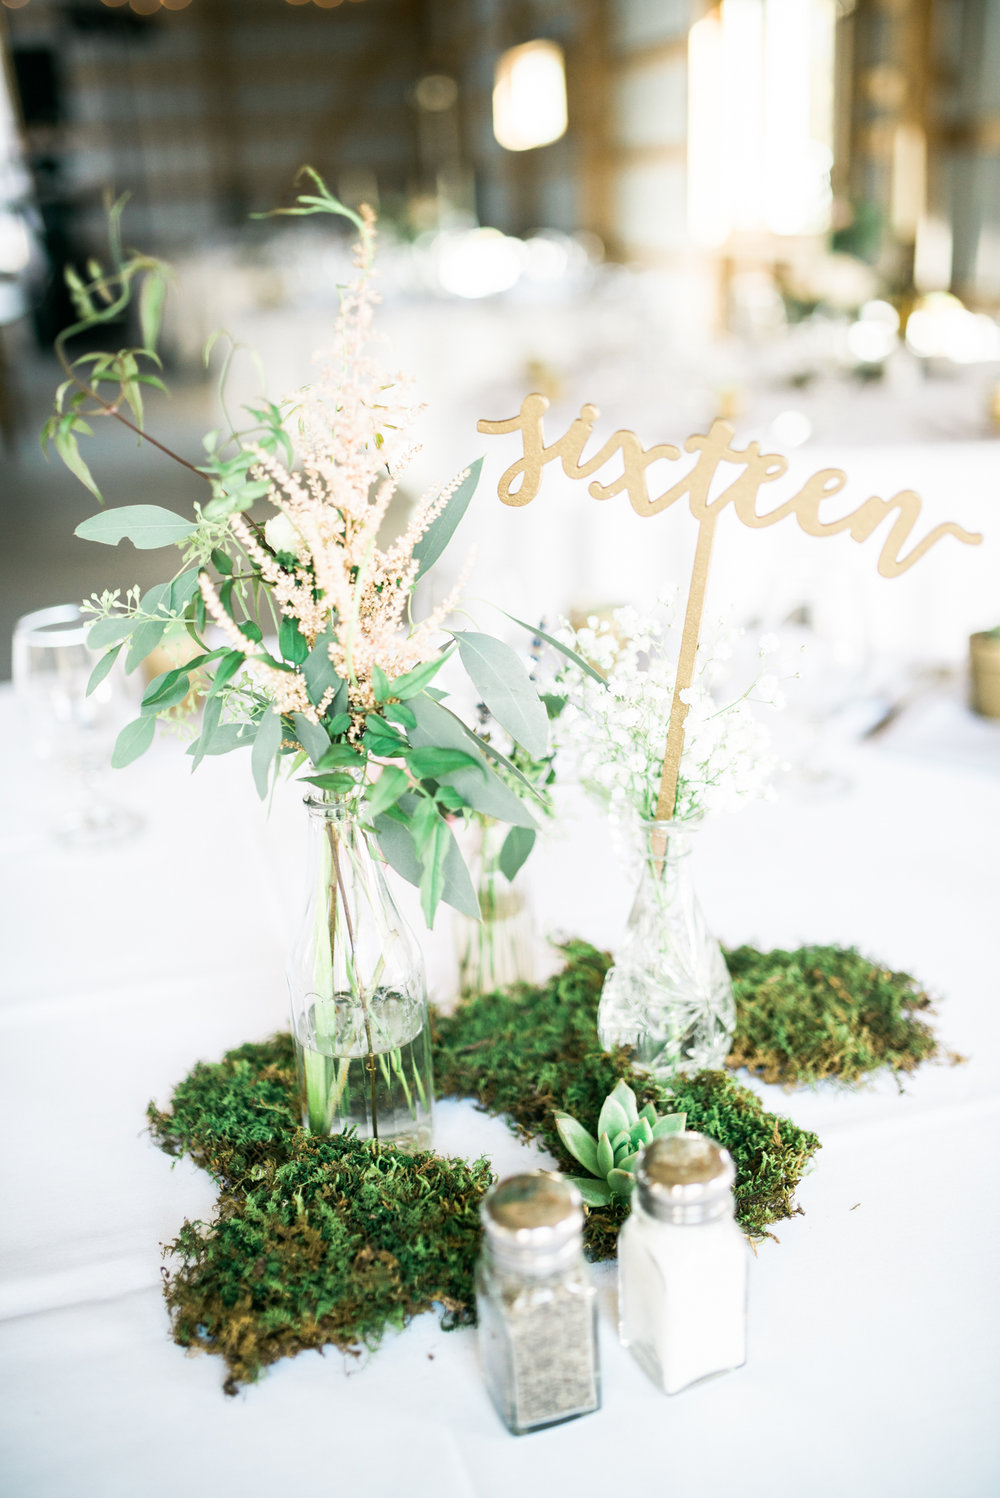 the bee's knees floral design decor minneapolis wedding flowers florist bridal florals brainerd lakes minneapols st paul twin cities st cloud duluth mankato mn florist whimsical florals wedding in the country barn wedding blush and greenery bride bouquet garden inspired loose flowing silk and willow ribbon tablescape table centerpiece moss blush flowers outdoor wedding archway